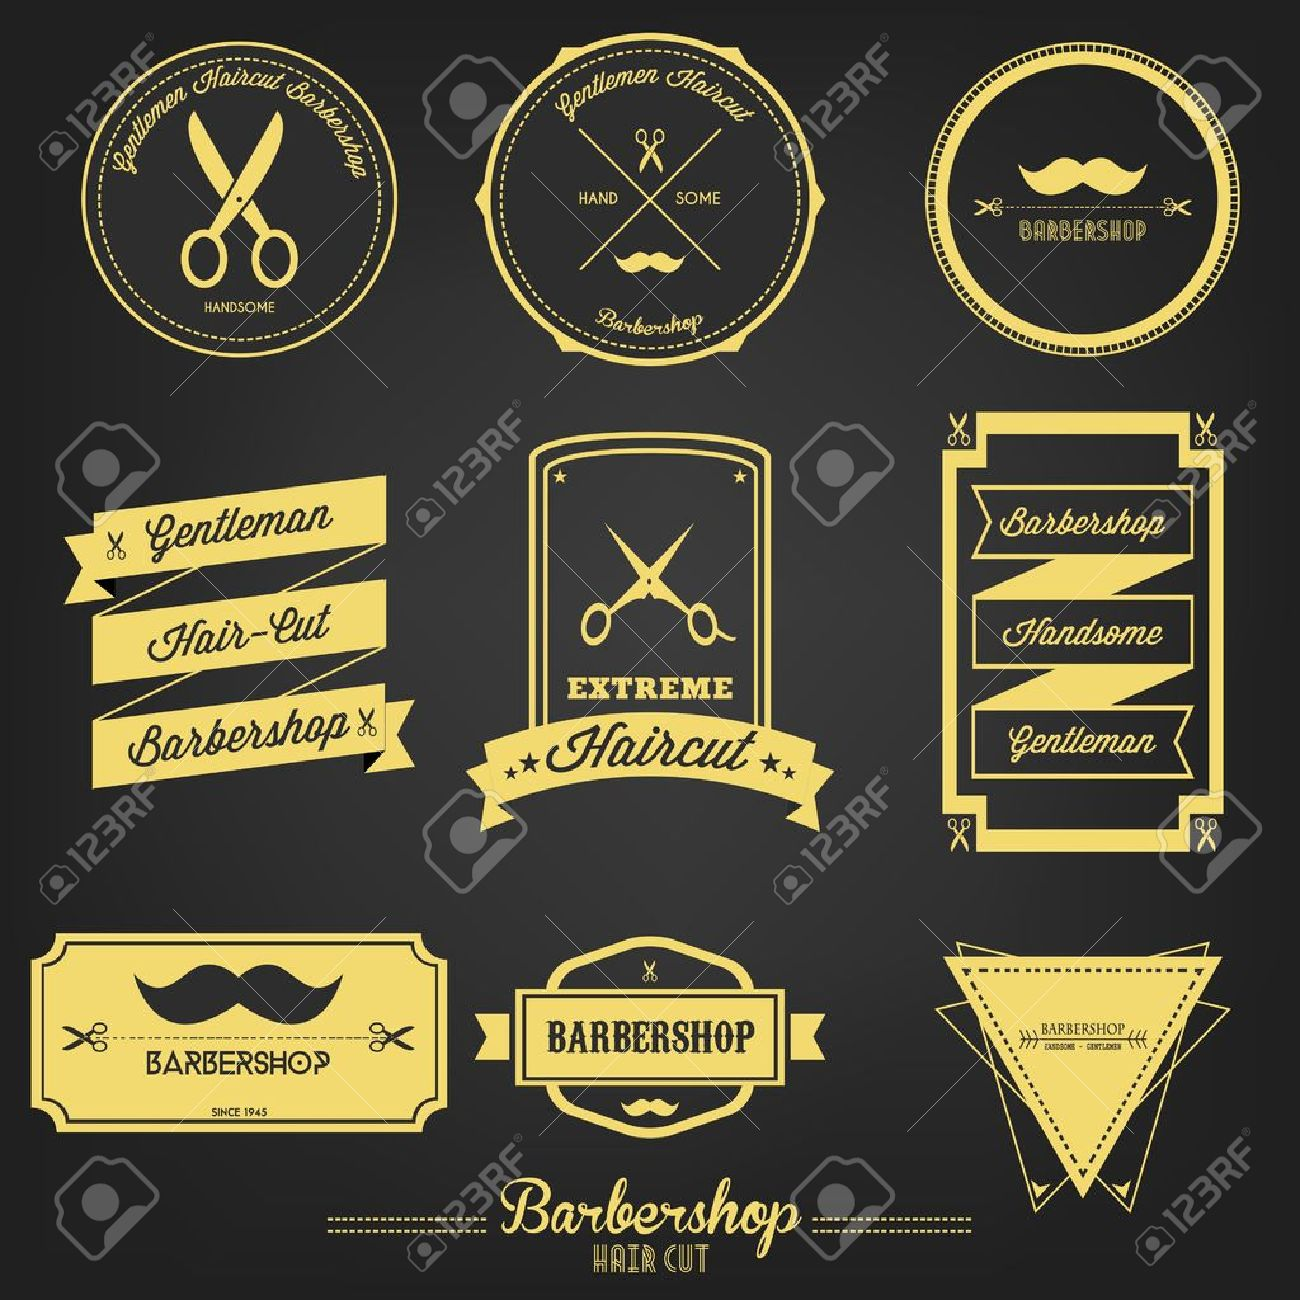 Premium Barbershop Vintage Label Stock Vector - 21962519